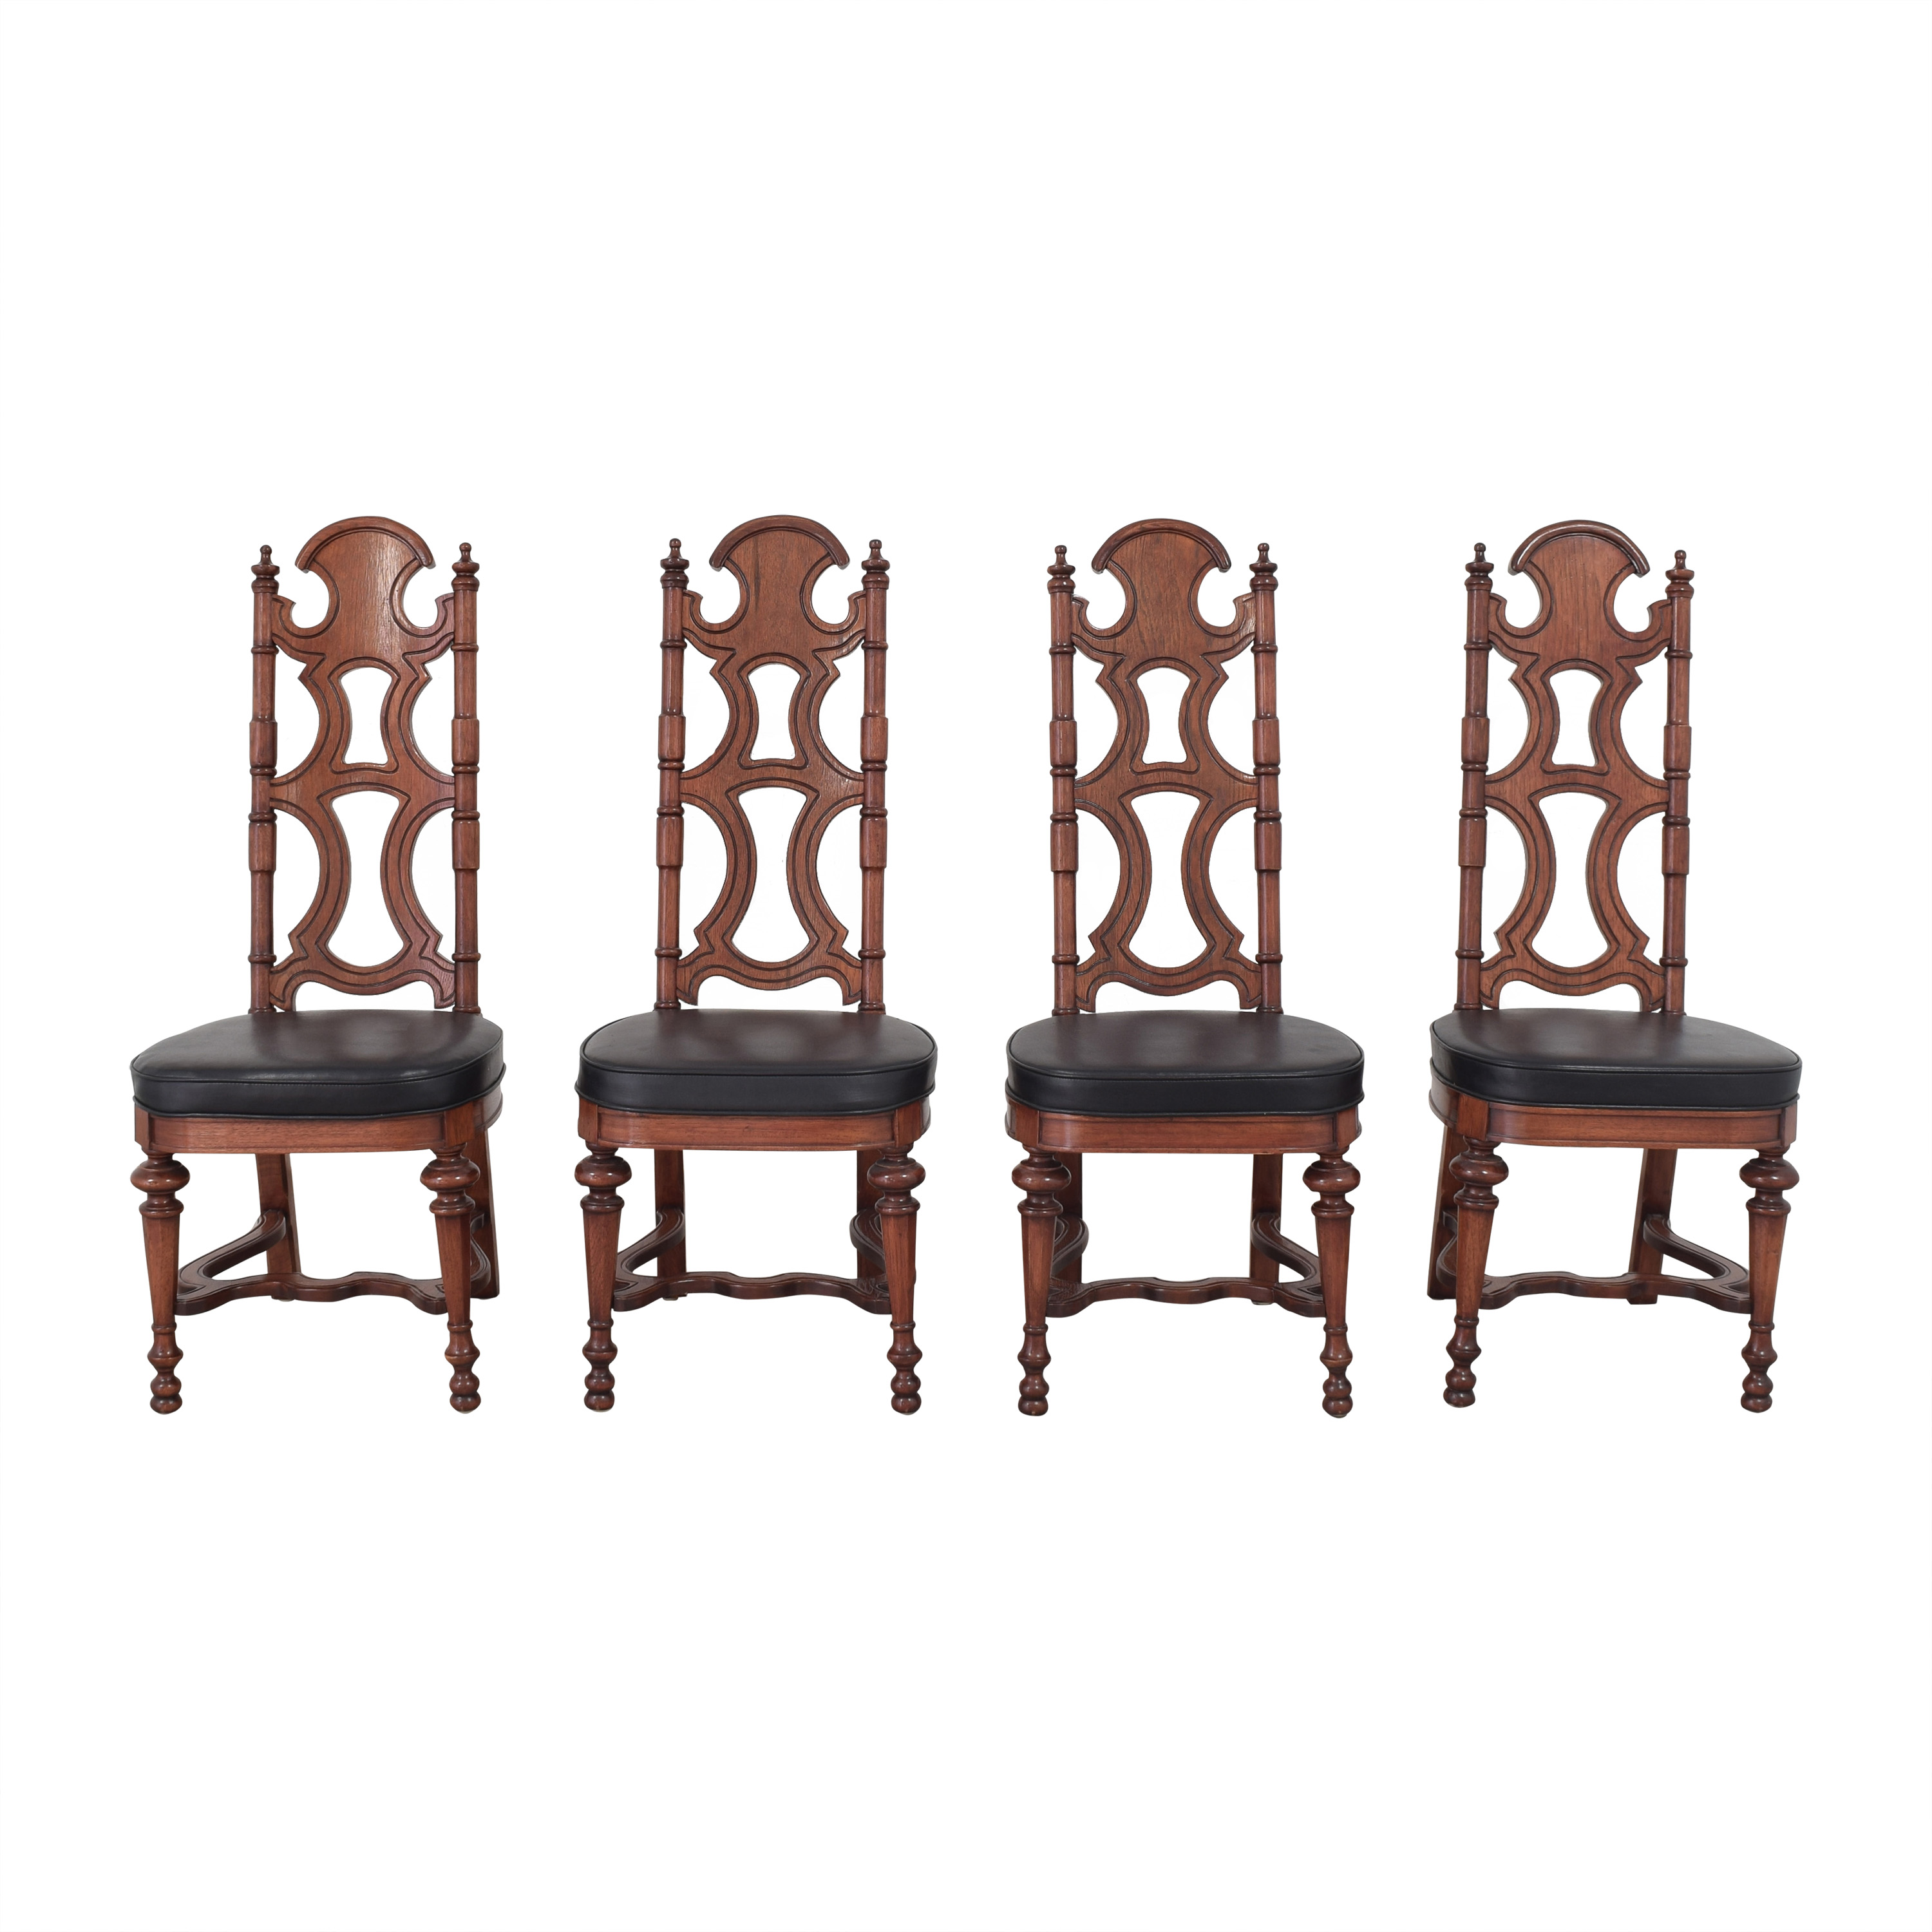 buy Drexel High Back Dining Chairs Drexel